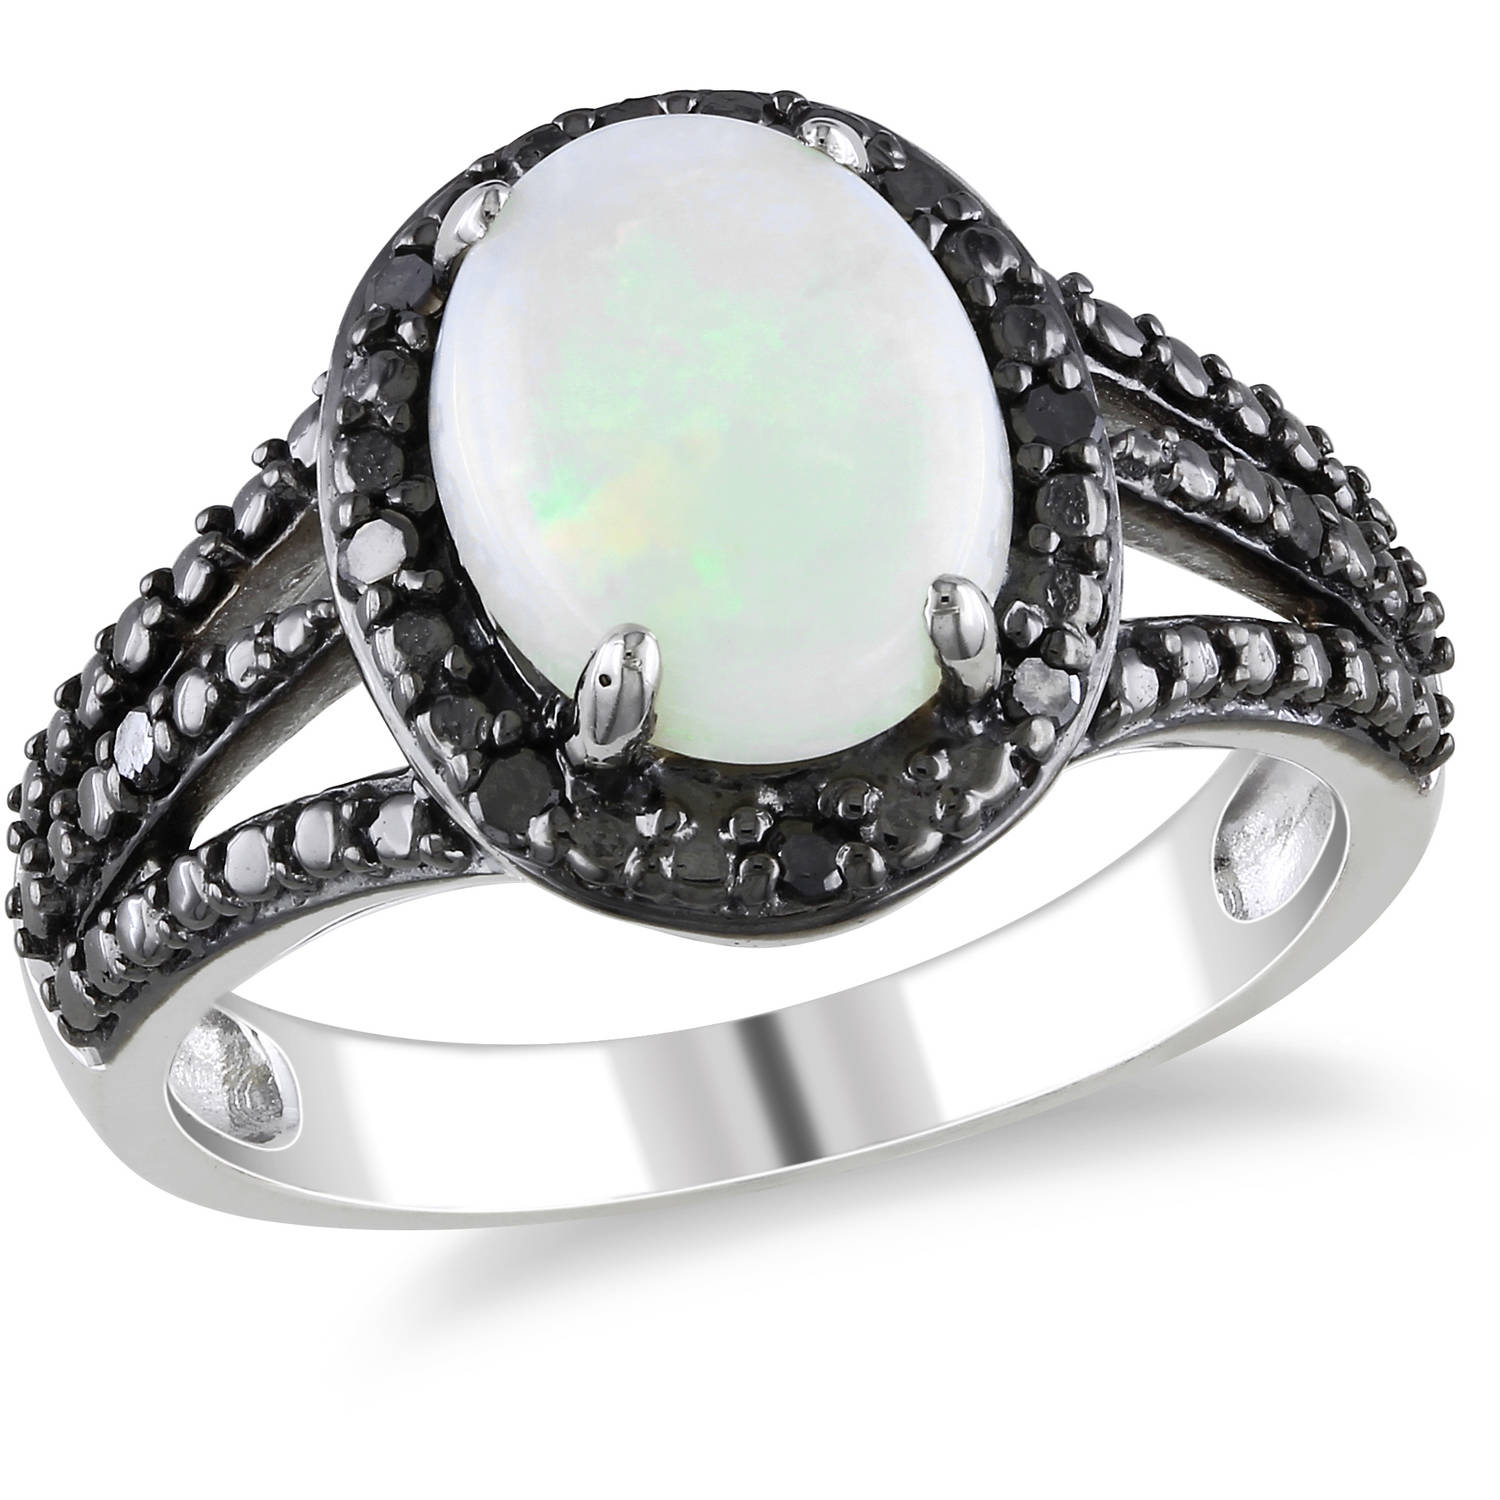 1-5 8 Carat T.G.W. Cabochon Opal and Black Diamond-Accent Sterling Silver Halo Cocktail Ring by Delmar Manufacturing LLC